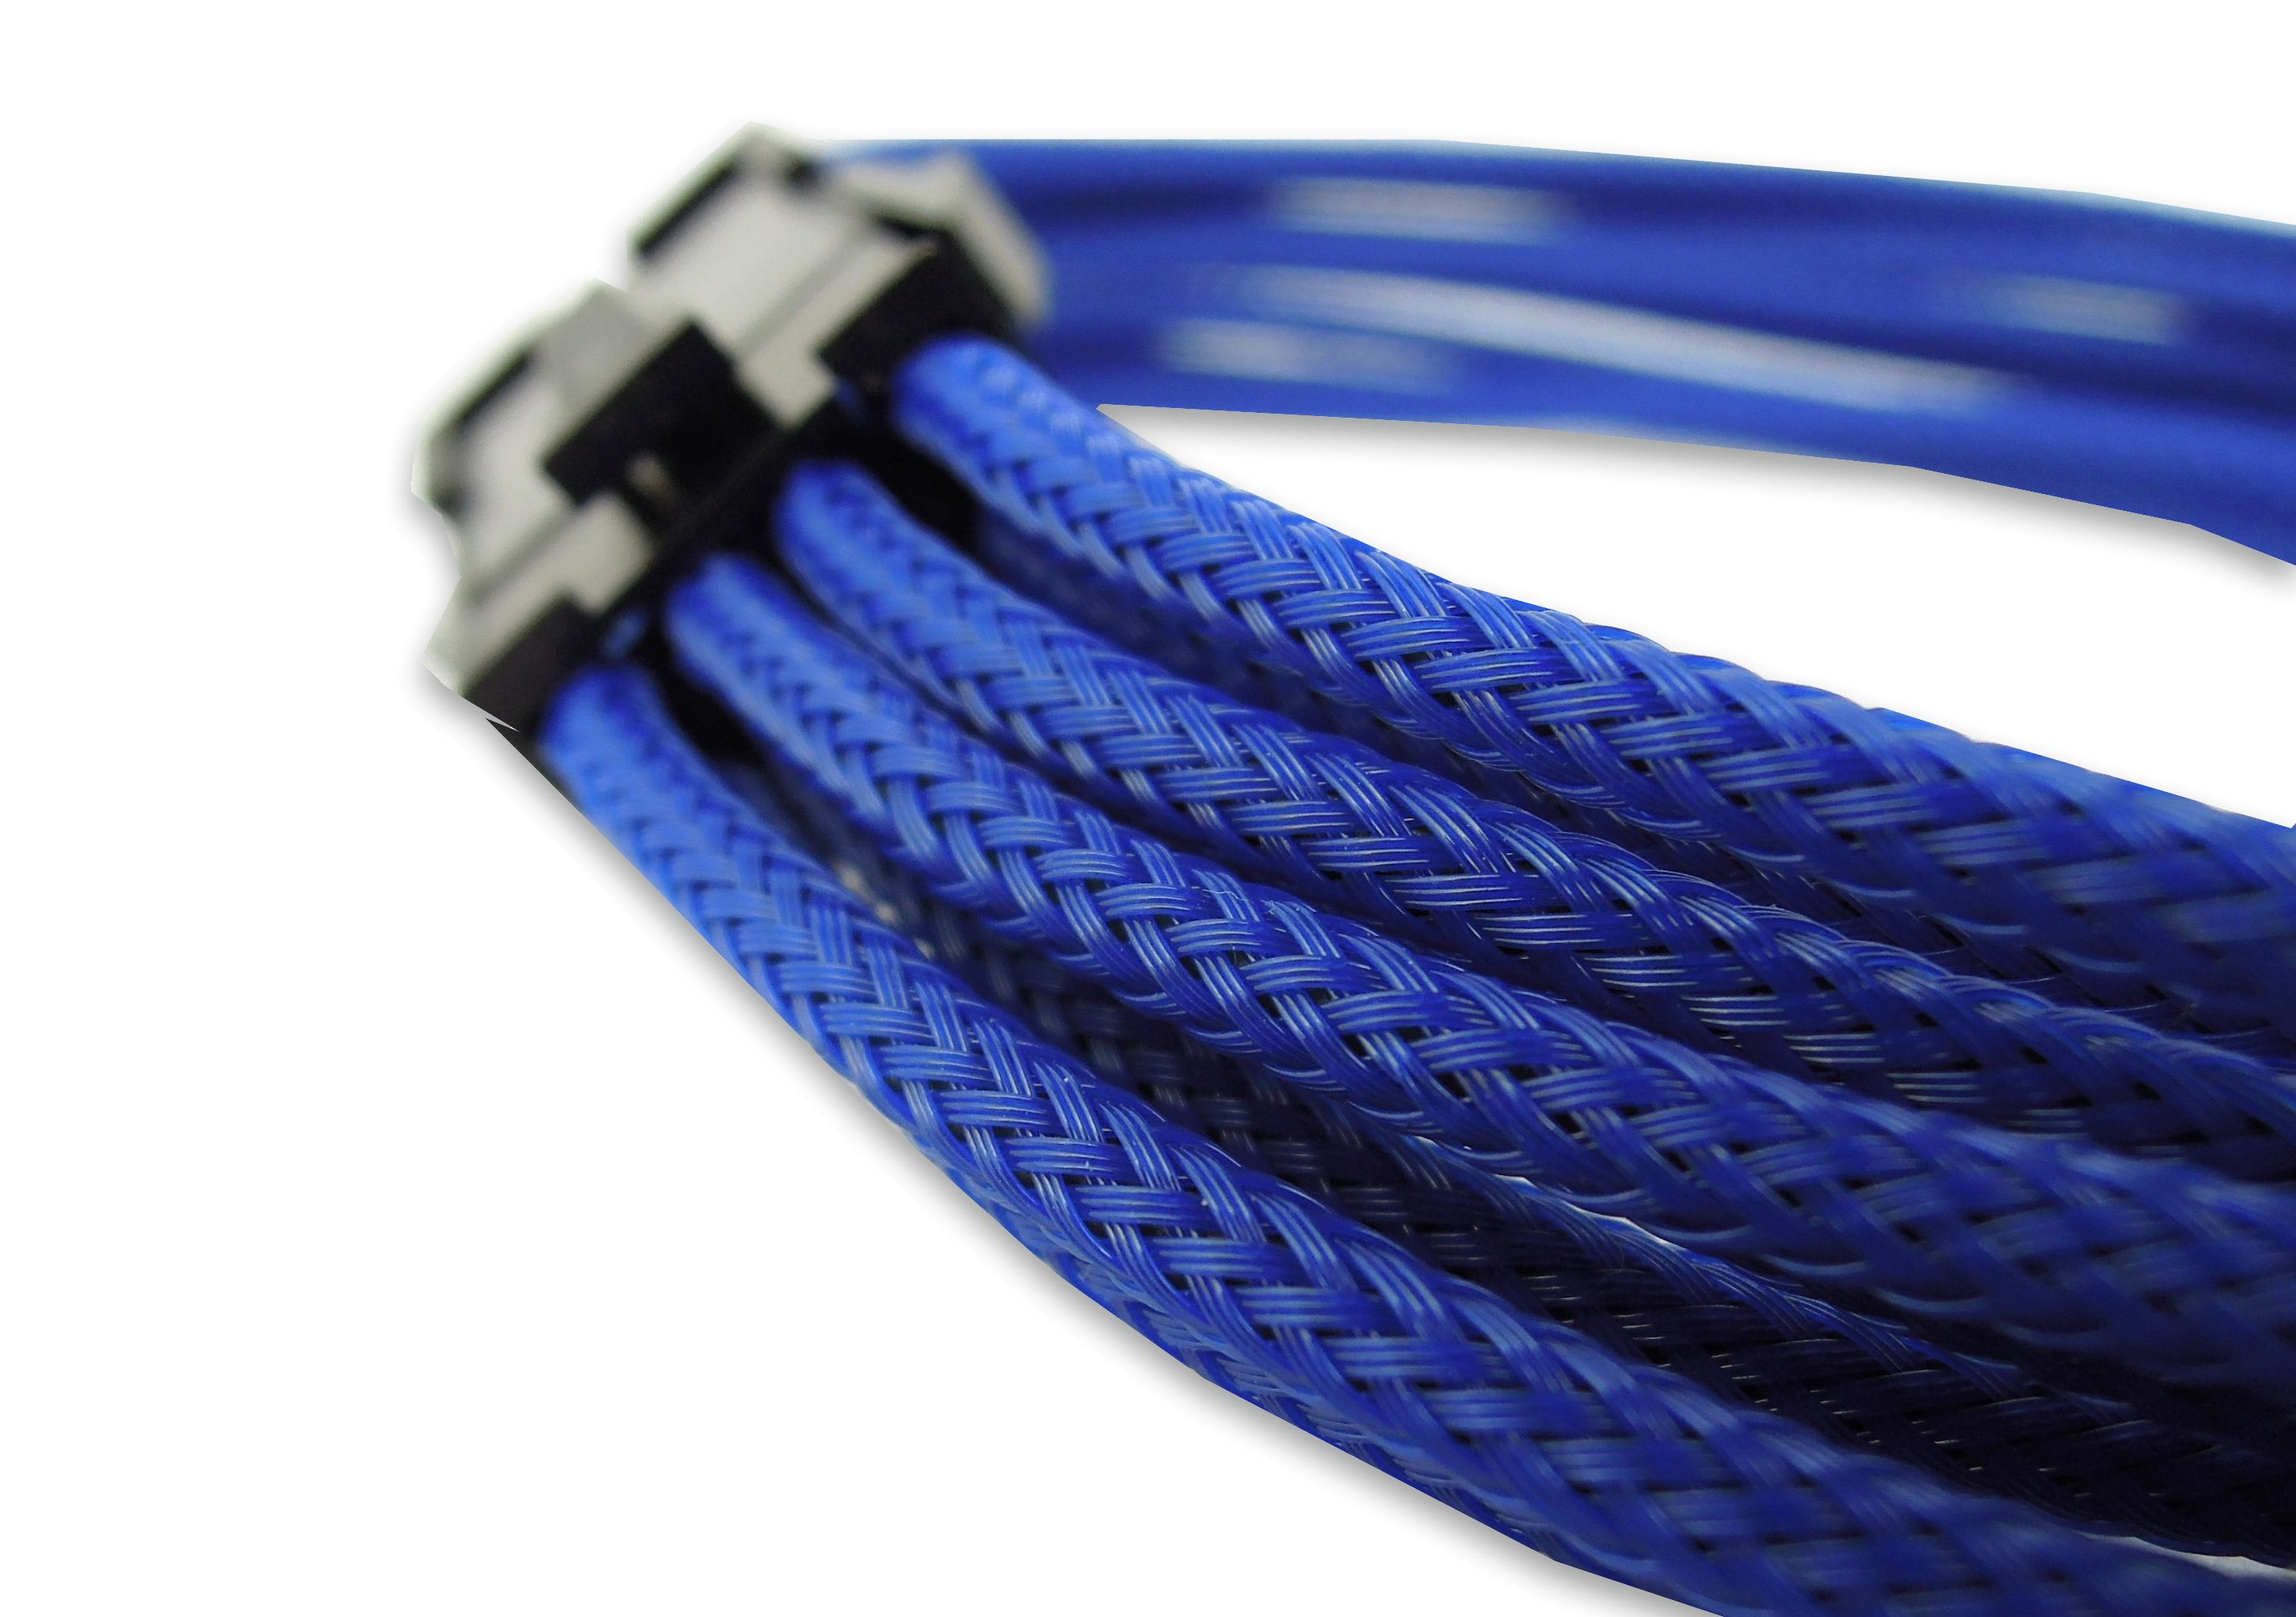 Blue 8 Pin Eps 30cm Extension Braided Cable Pc Motherboard Internal Bitfenix Atx 24 Red Black 30 Cm 12v Sleeved